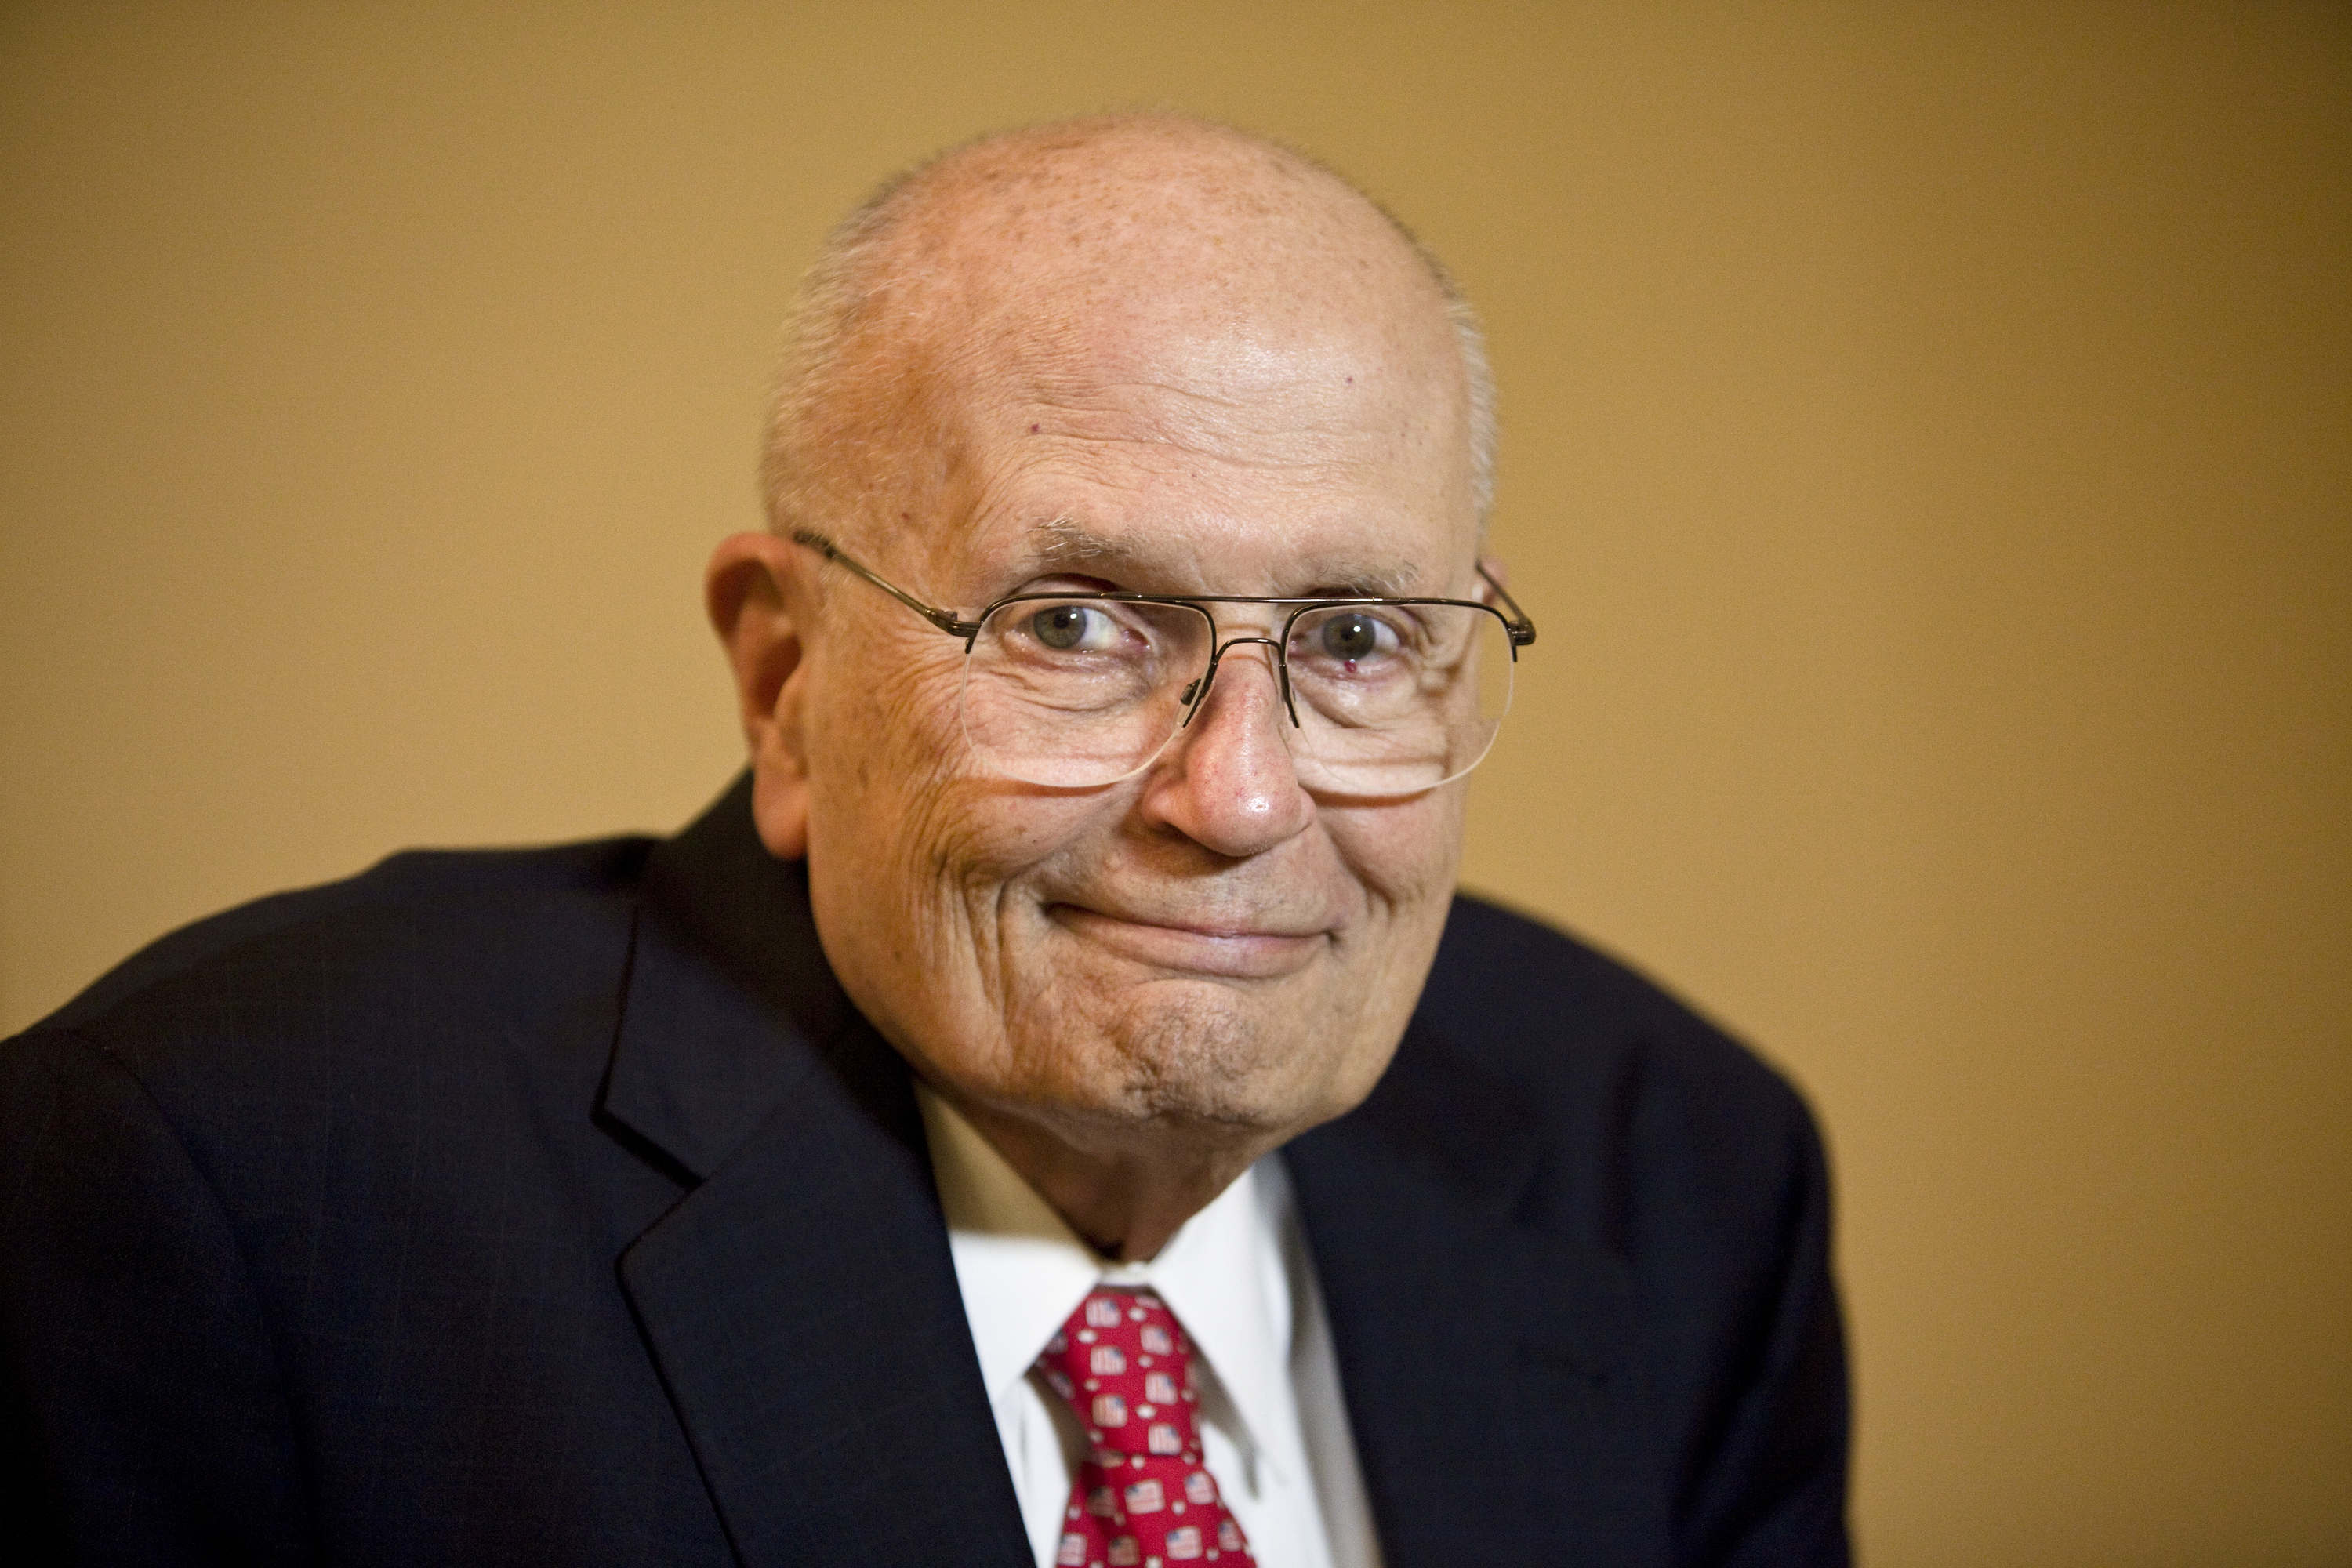 The late representative John Dingell | Photo: Getty Images